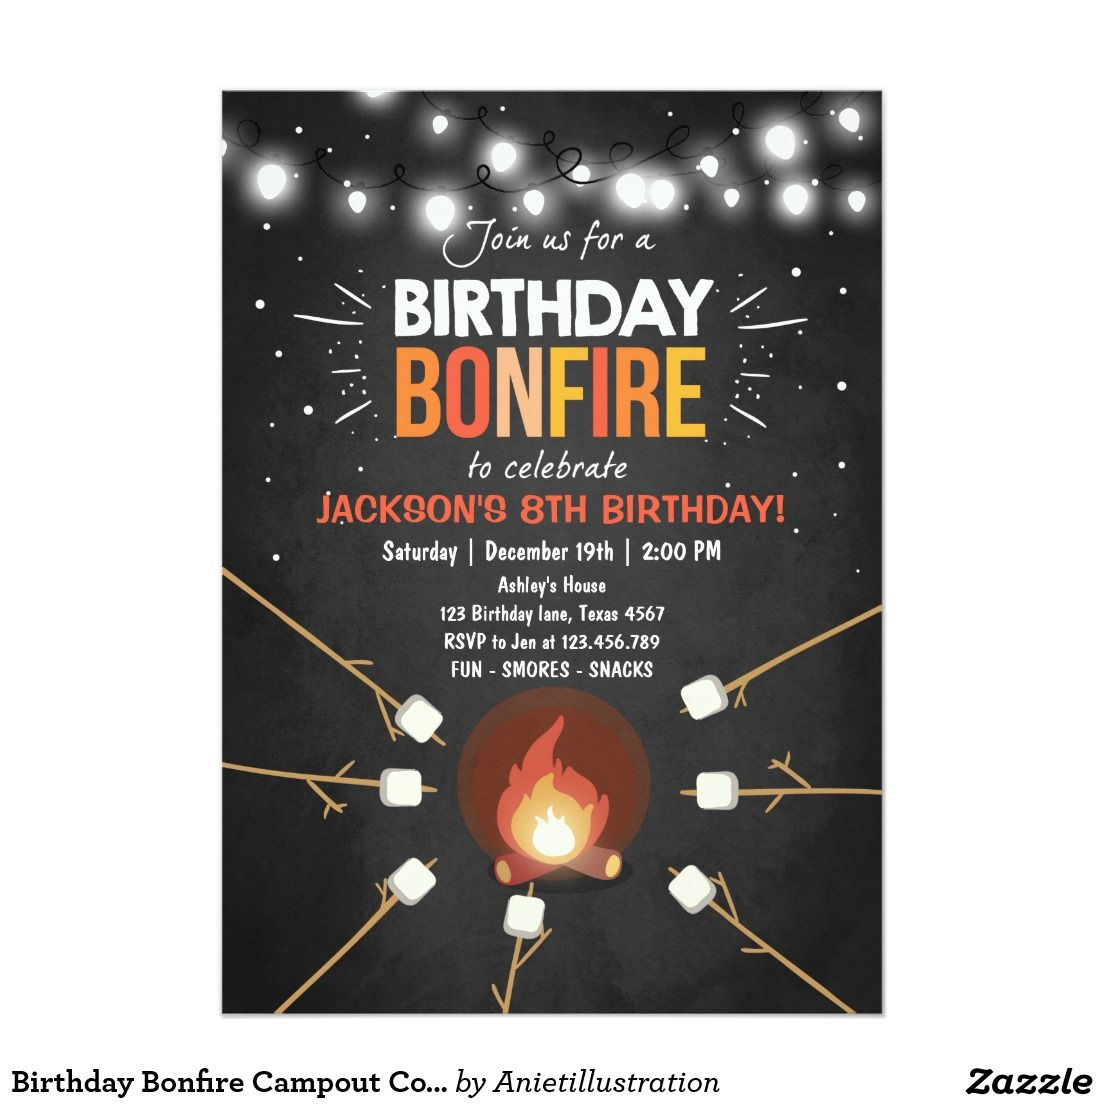 Birthday bonfire campout cookout party invitation pinteres birthday bonfire campout cookout party invitation more filmwisefo